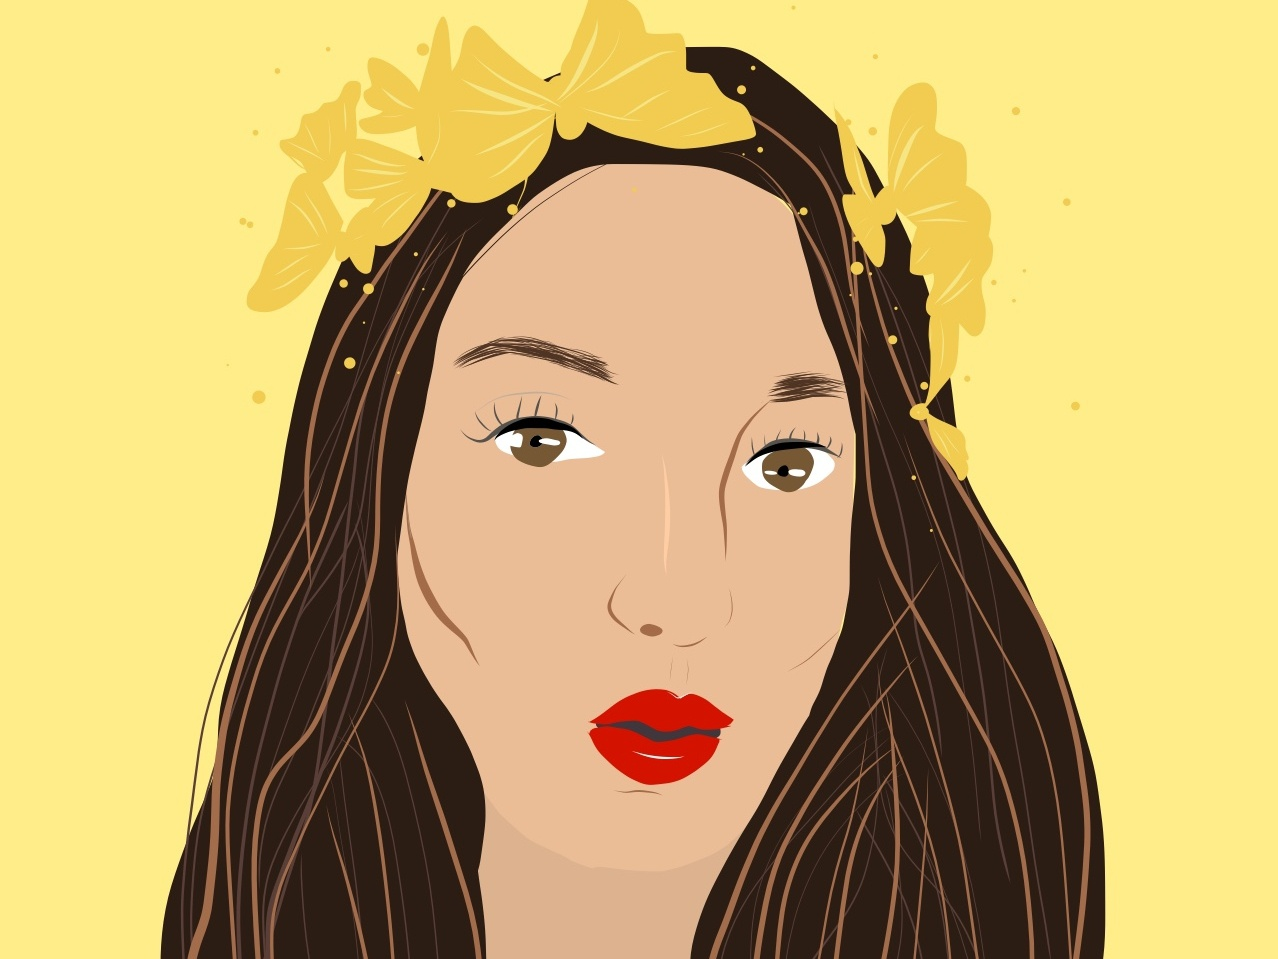 Self Portrait portrait illustration portrait art illustration logo self portrait woman illustration procreate app procreate digital illustration digital illustrations digital drawing drawing adobe draw adobe illustrator draw adobe illustrator women in illustration women who draw illustration